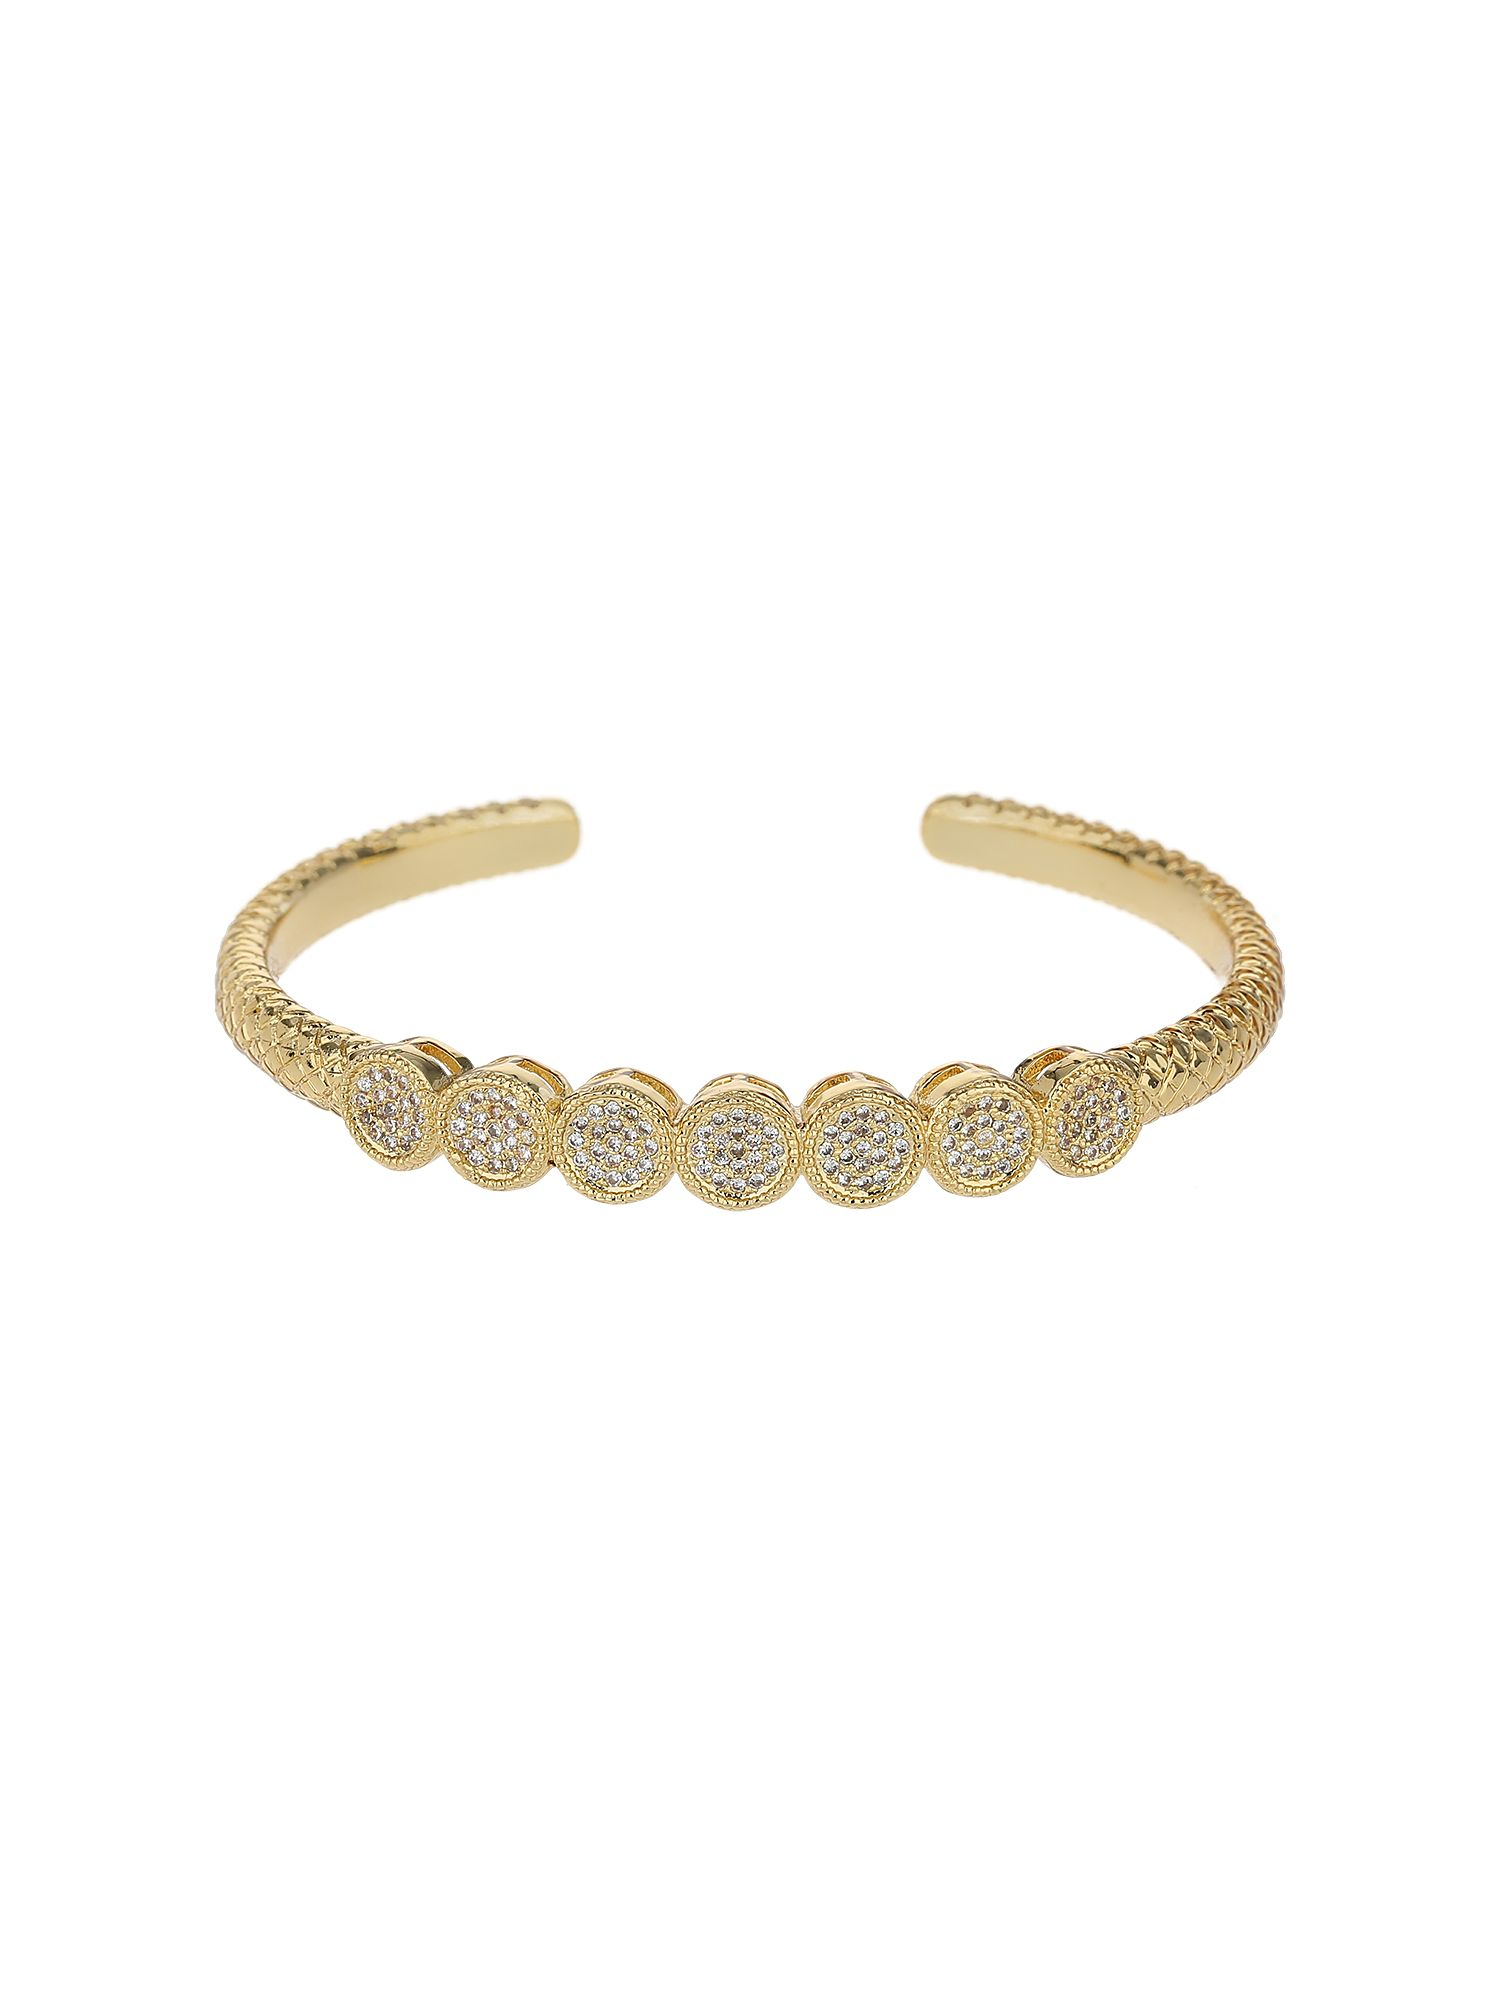 Mikey 7 round embed cubic buttons cuff bangle, N/A